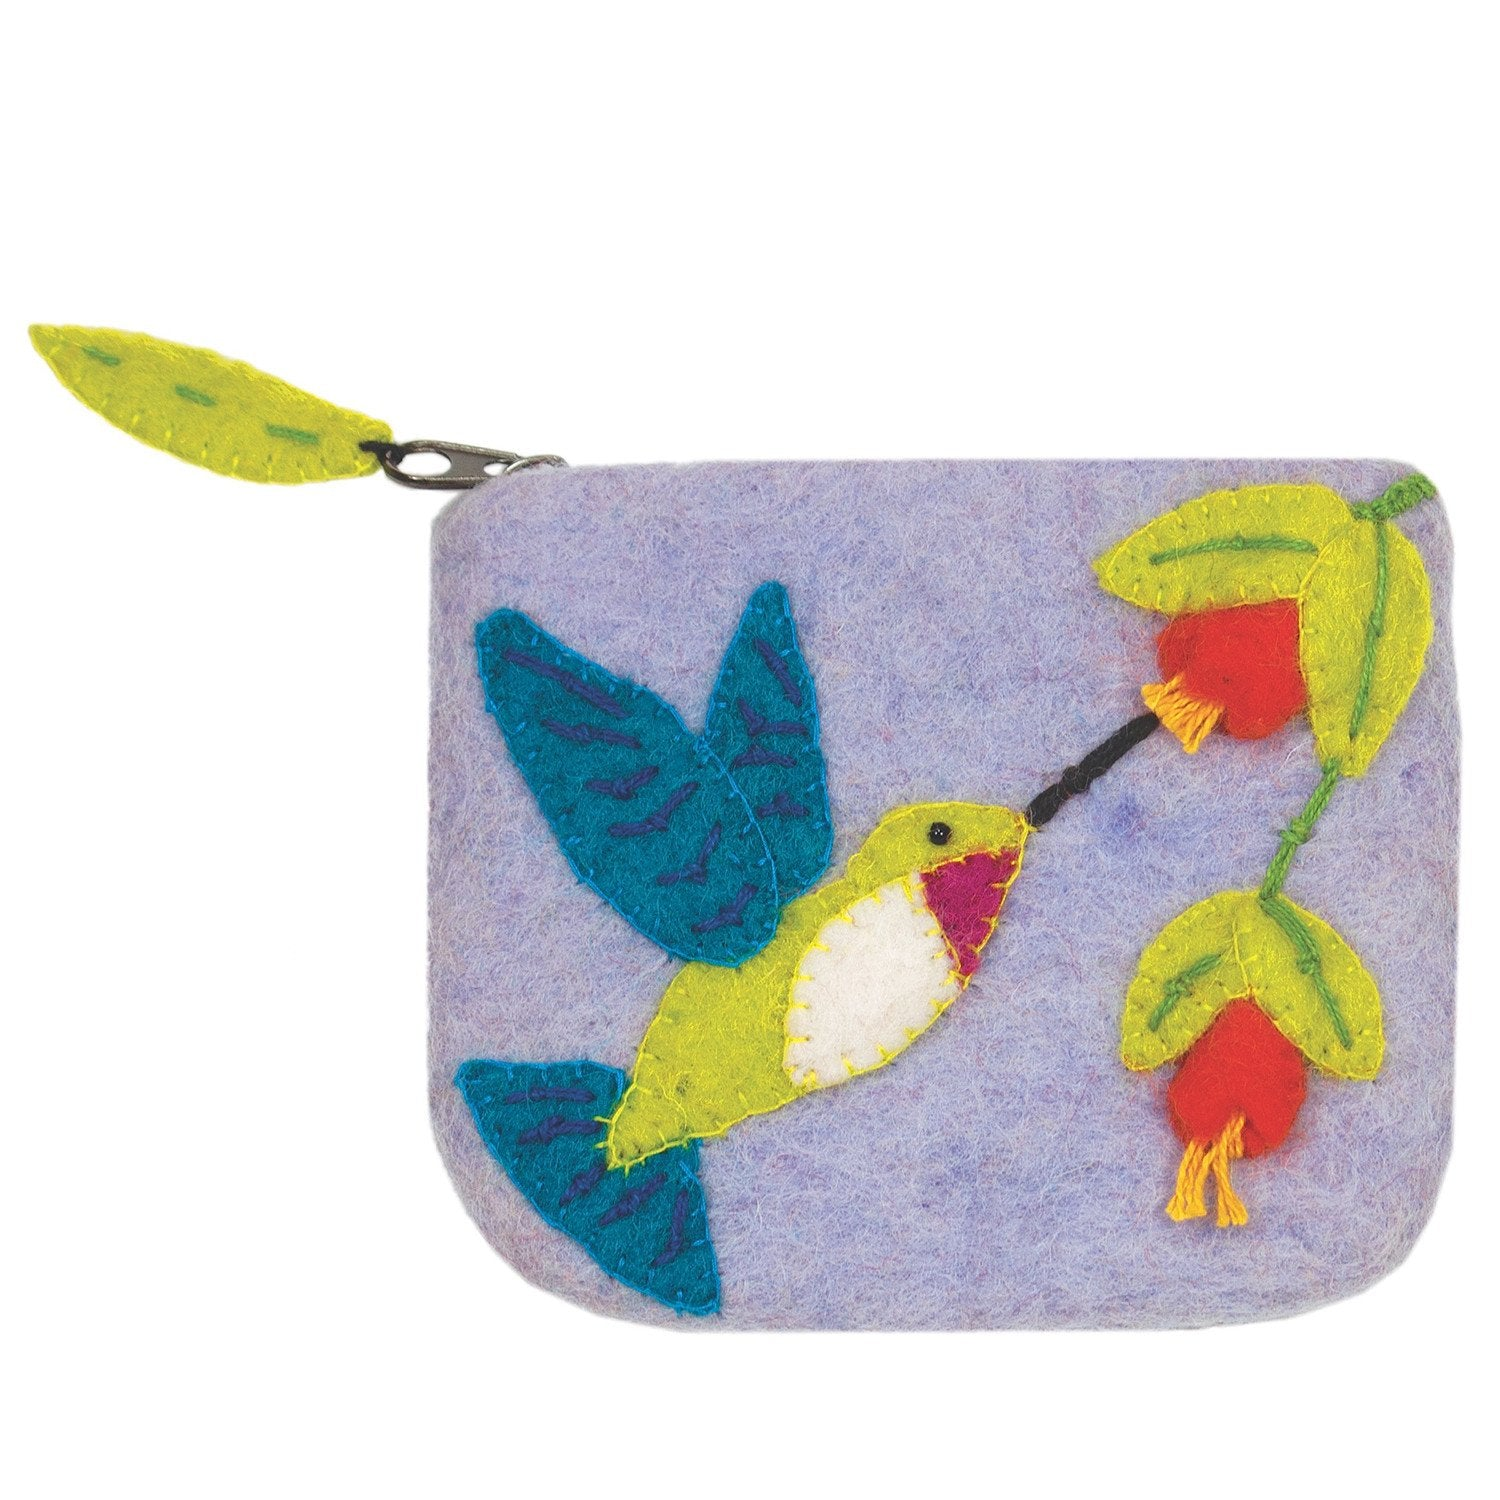 Felt Coin Purse - Hummingbird